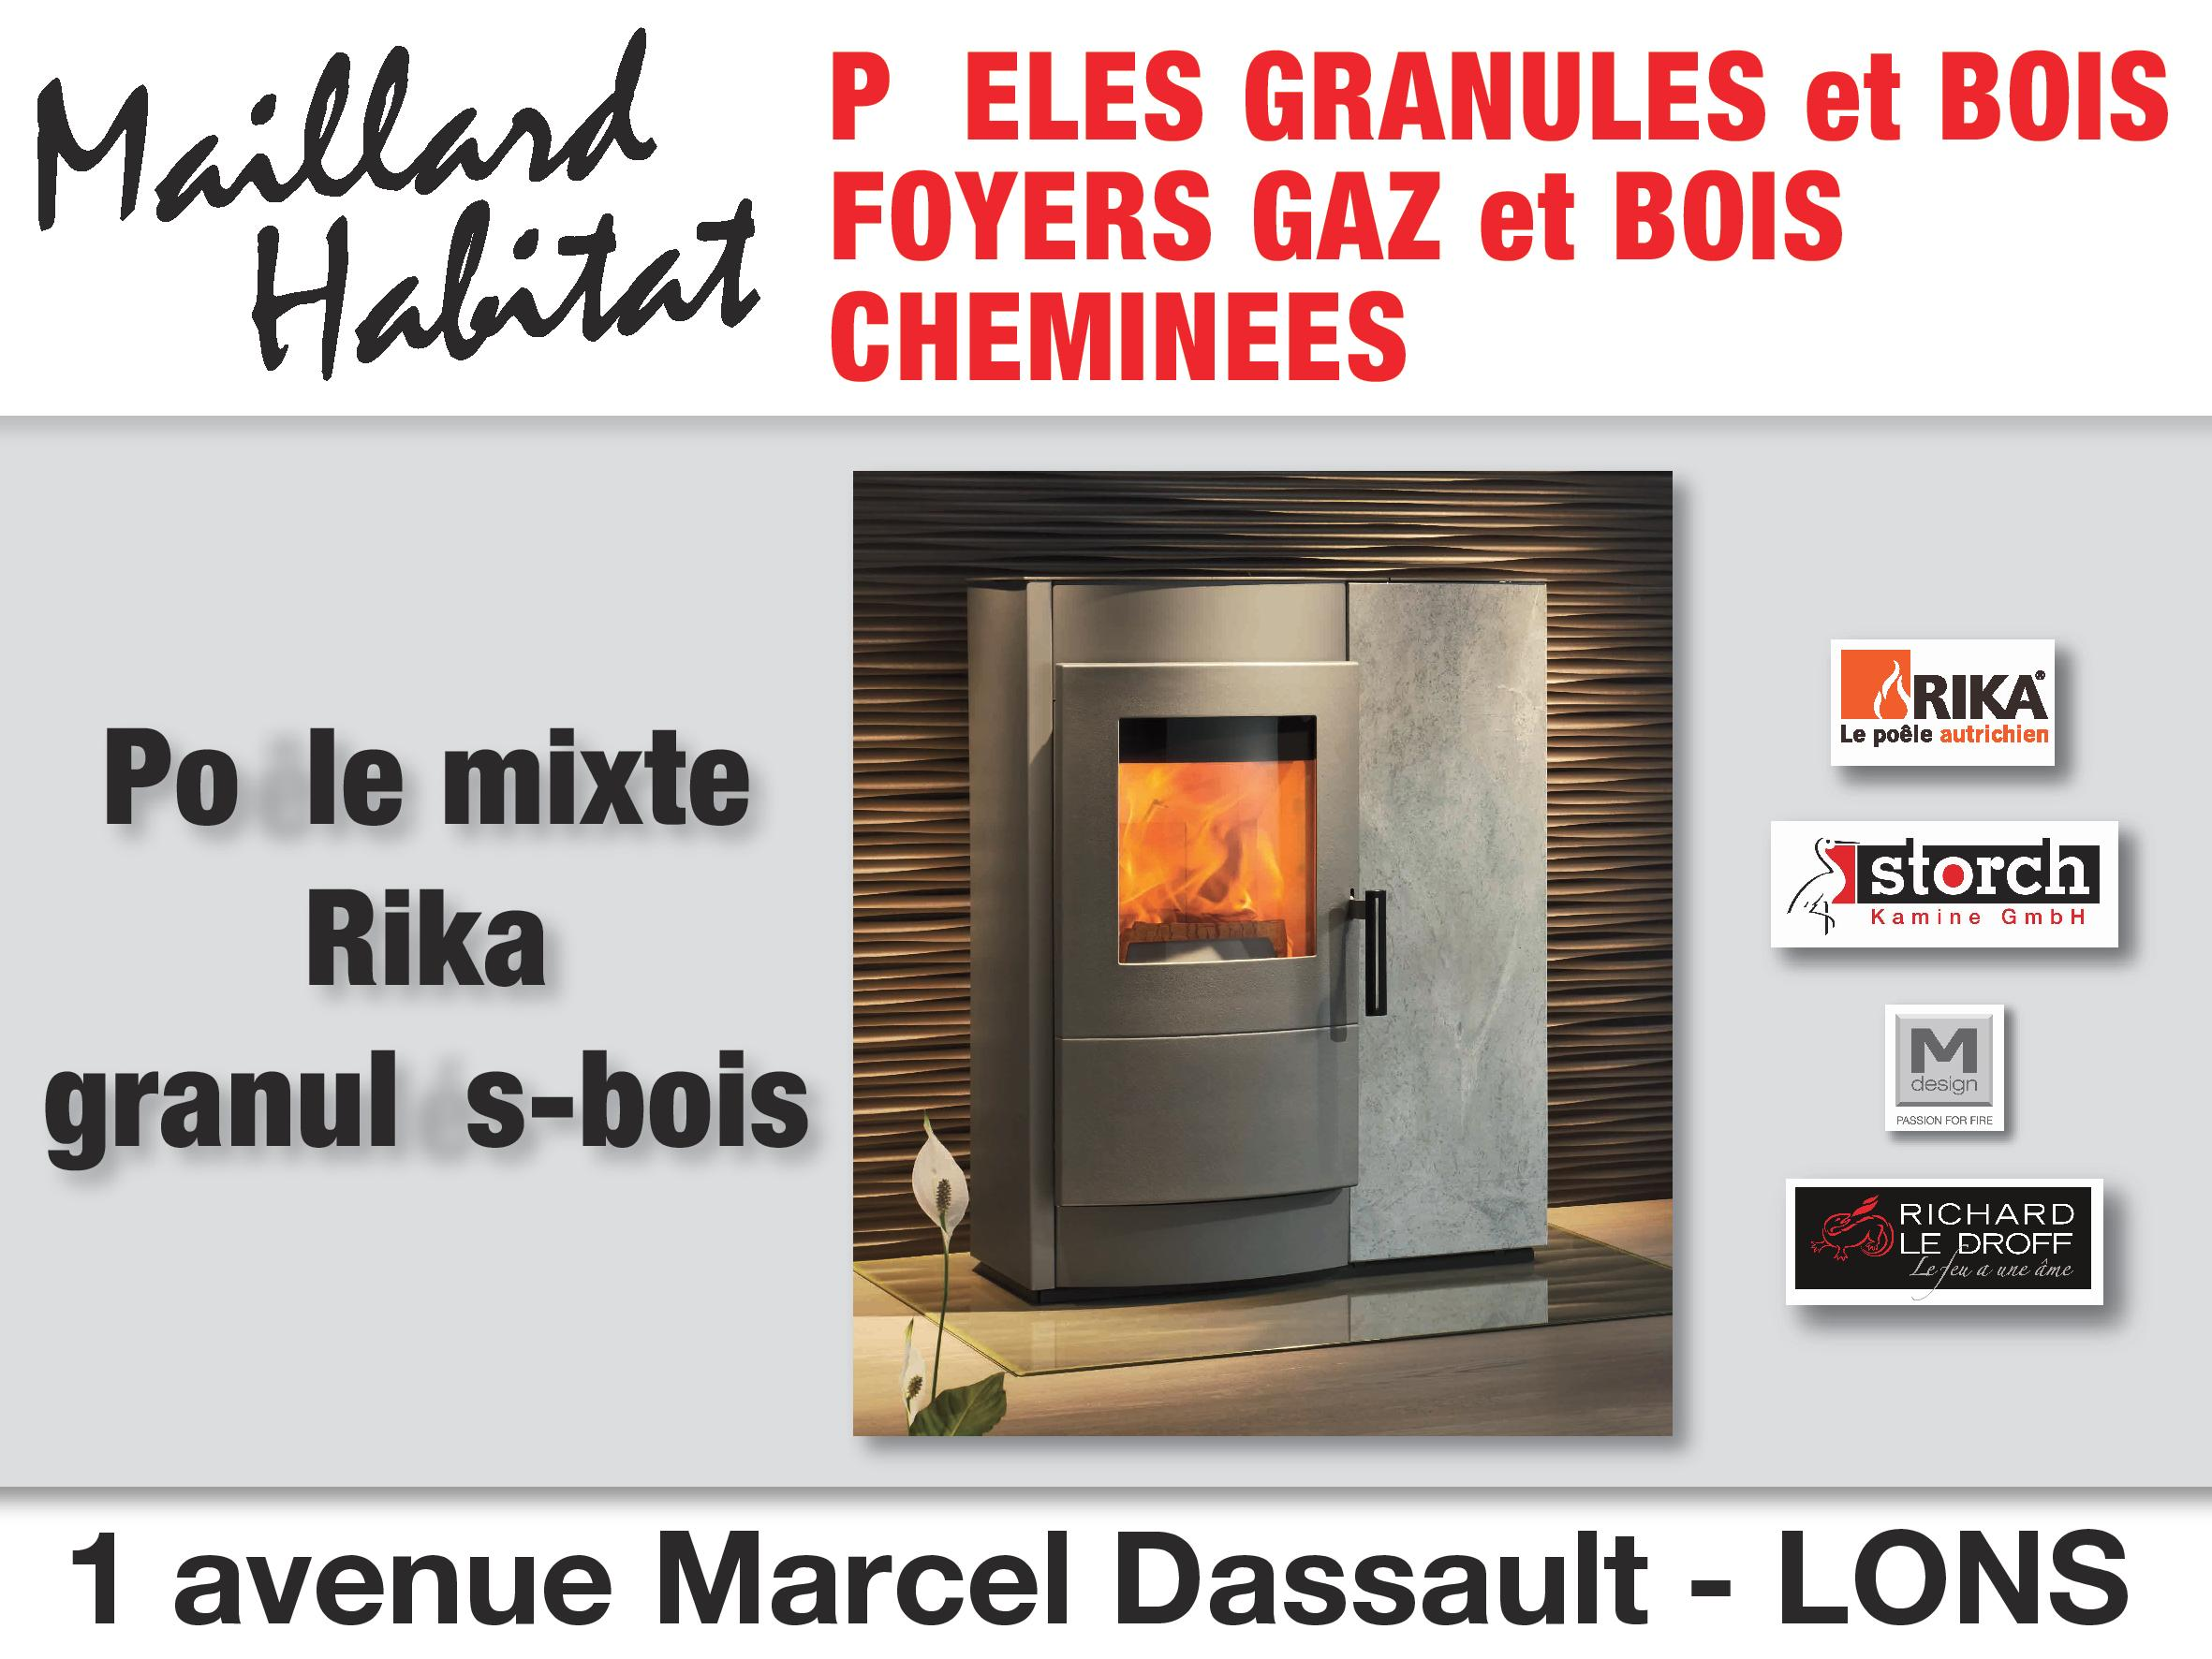 maillard poele